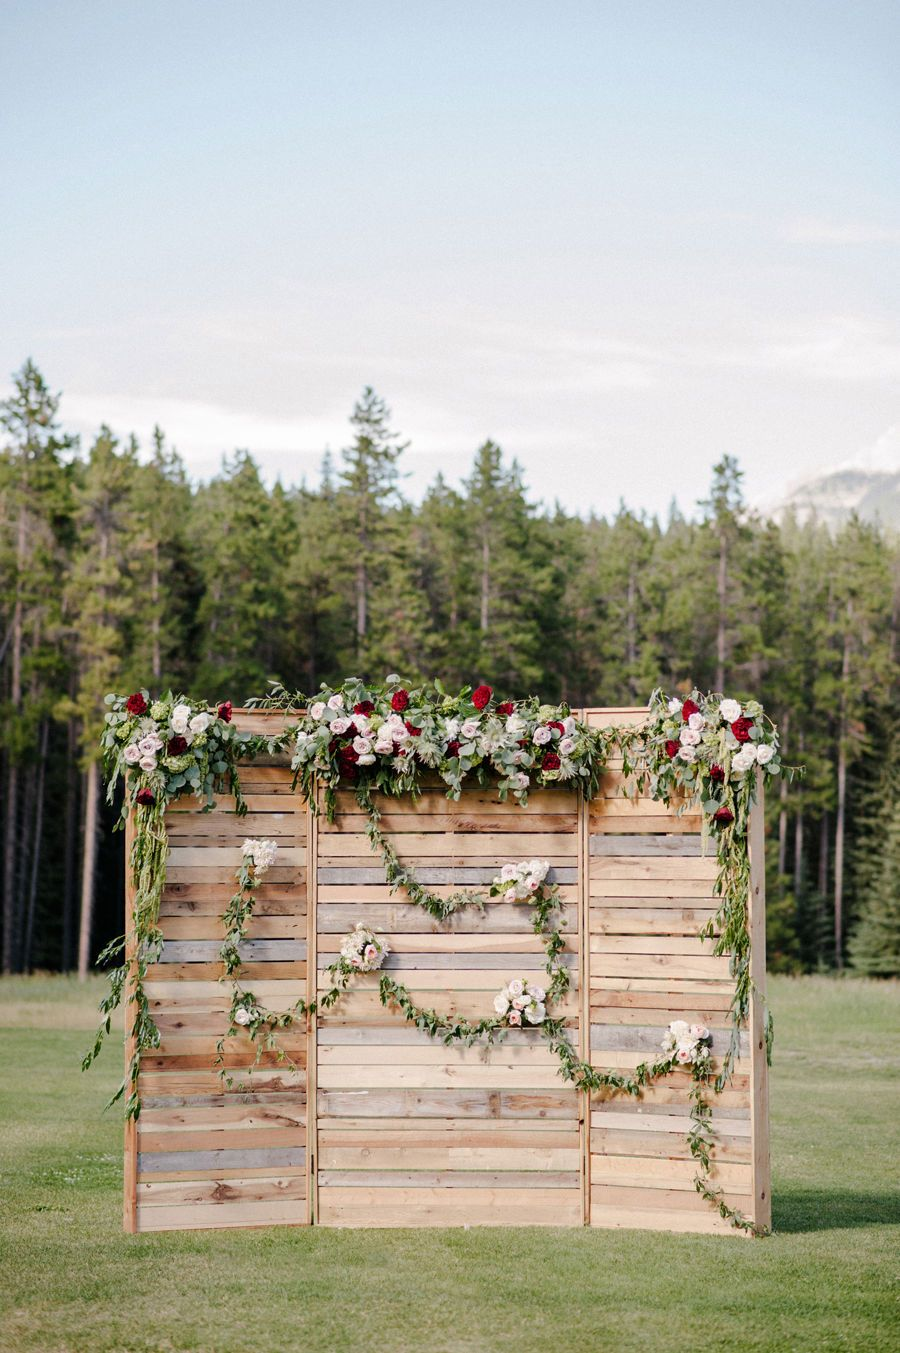 This pallet wedding ceremony backdrop is to die for! I love the creative  wedding ceremony decor idea. It would be easy for a DIY wedding!